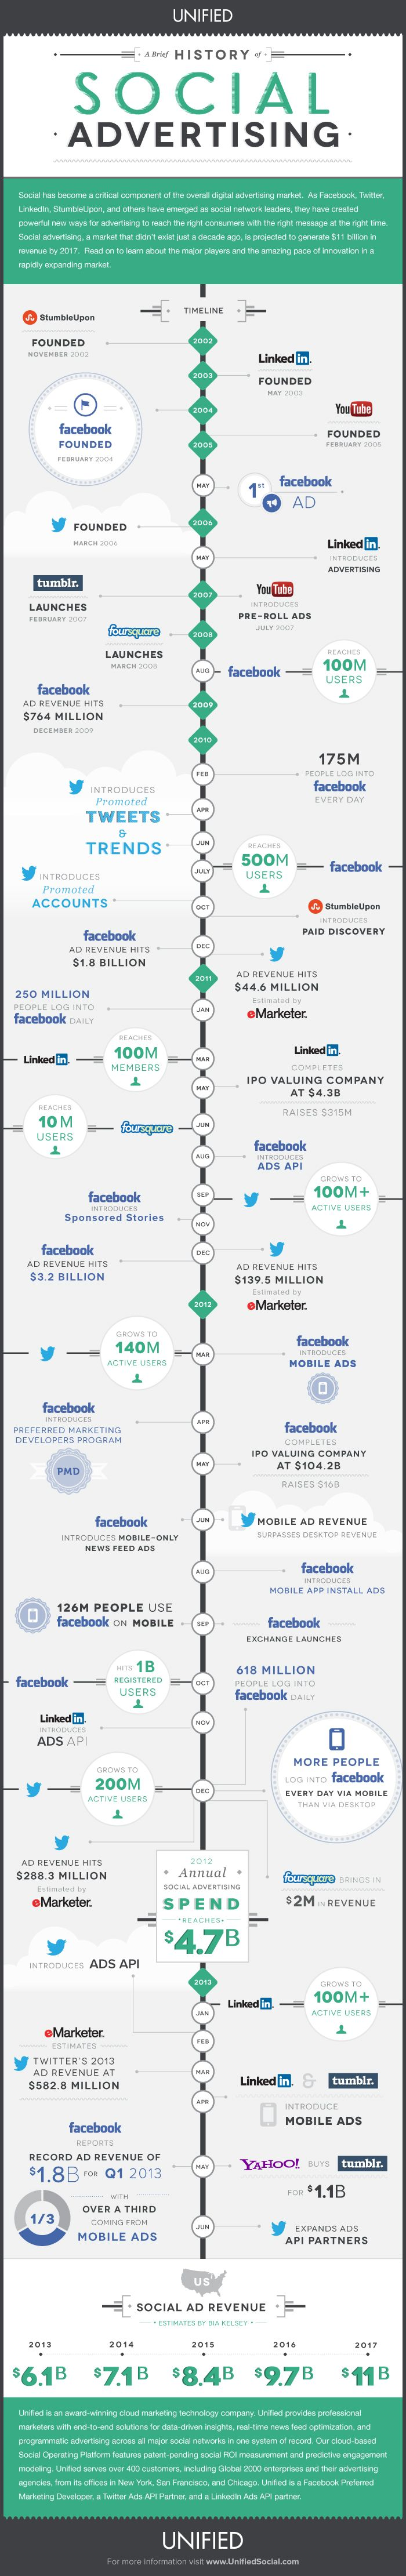 A Brief History Of Social Advertising #Infographic #SocialMedia #Advertising